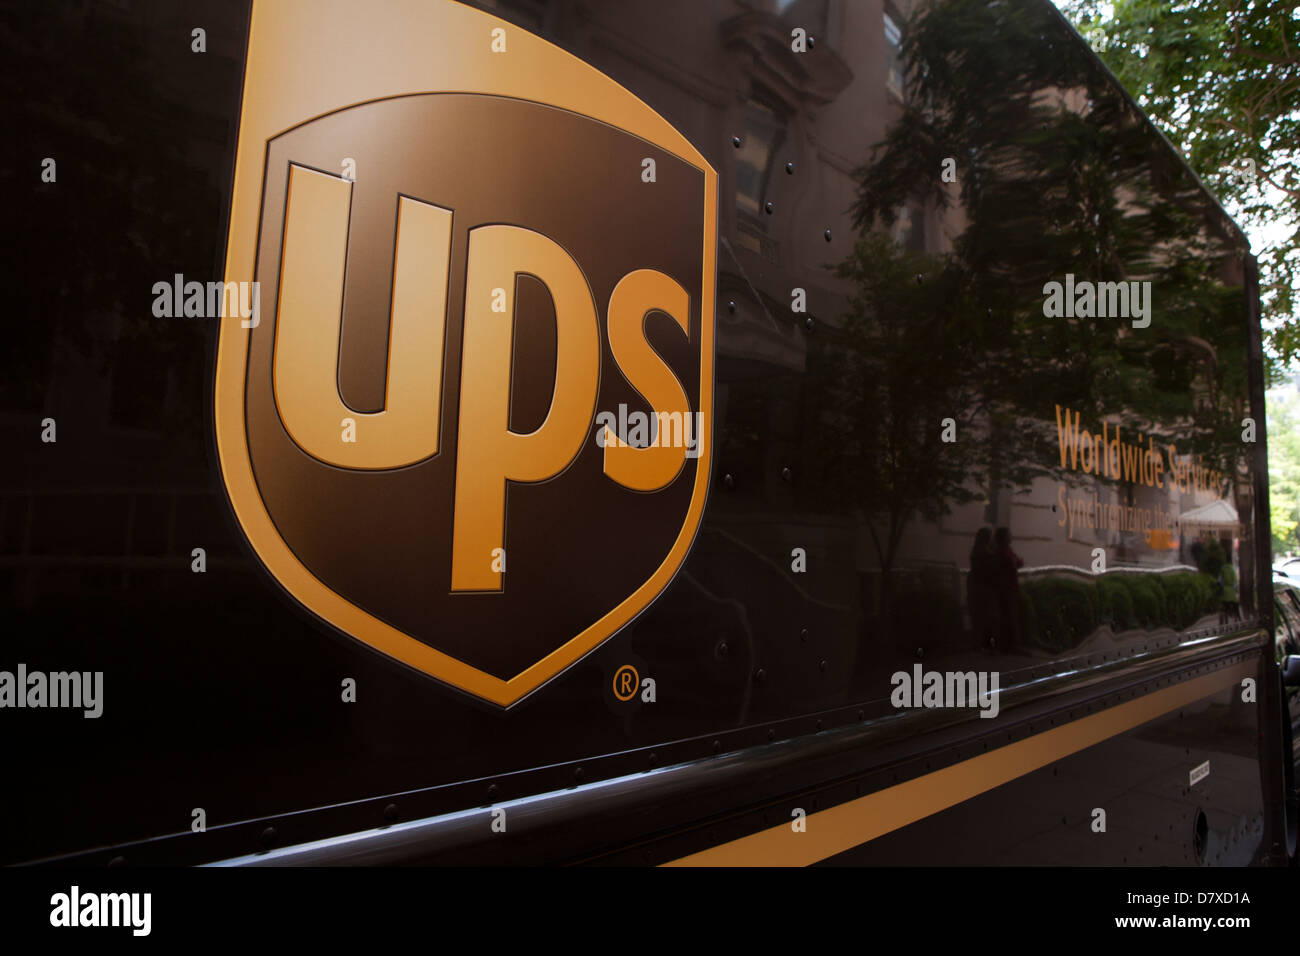 UPS logo on delivery truck - Stock Image